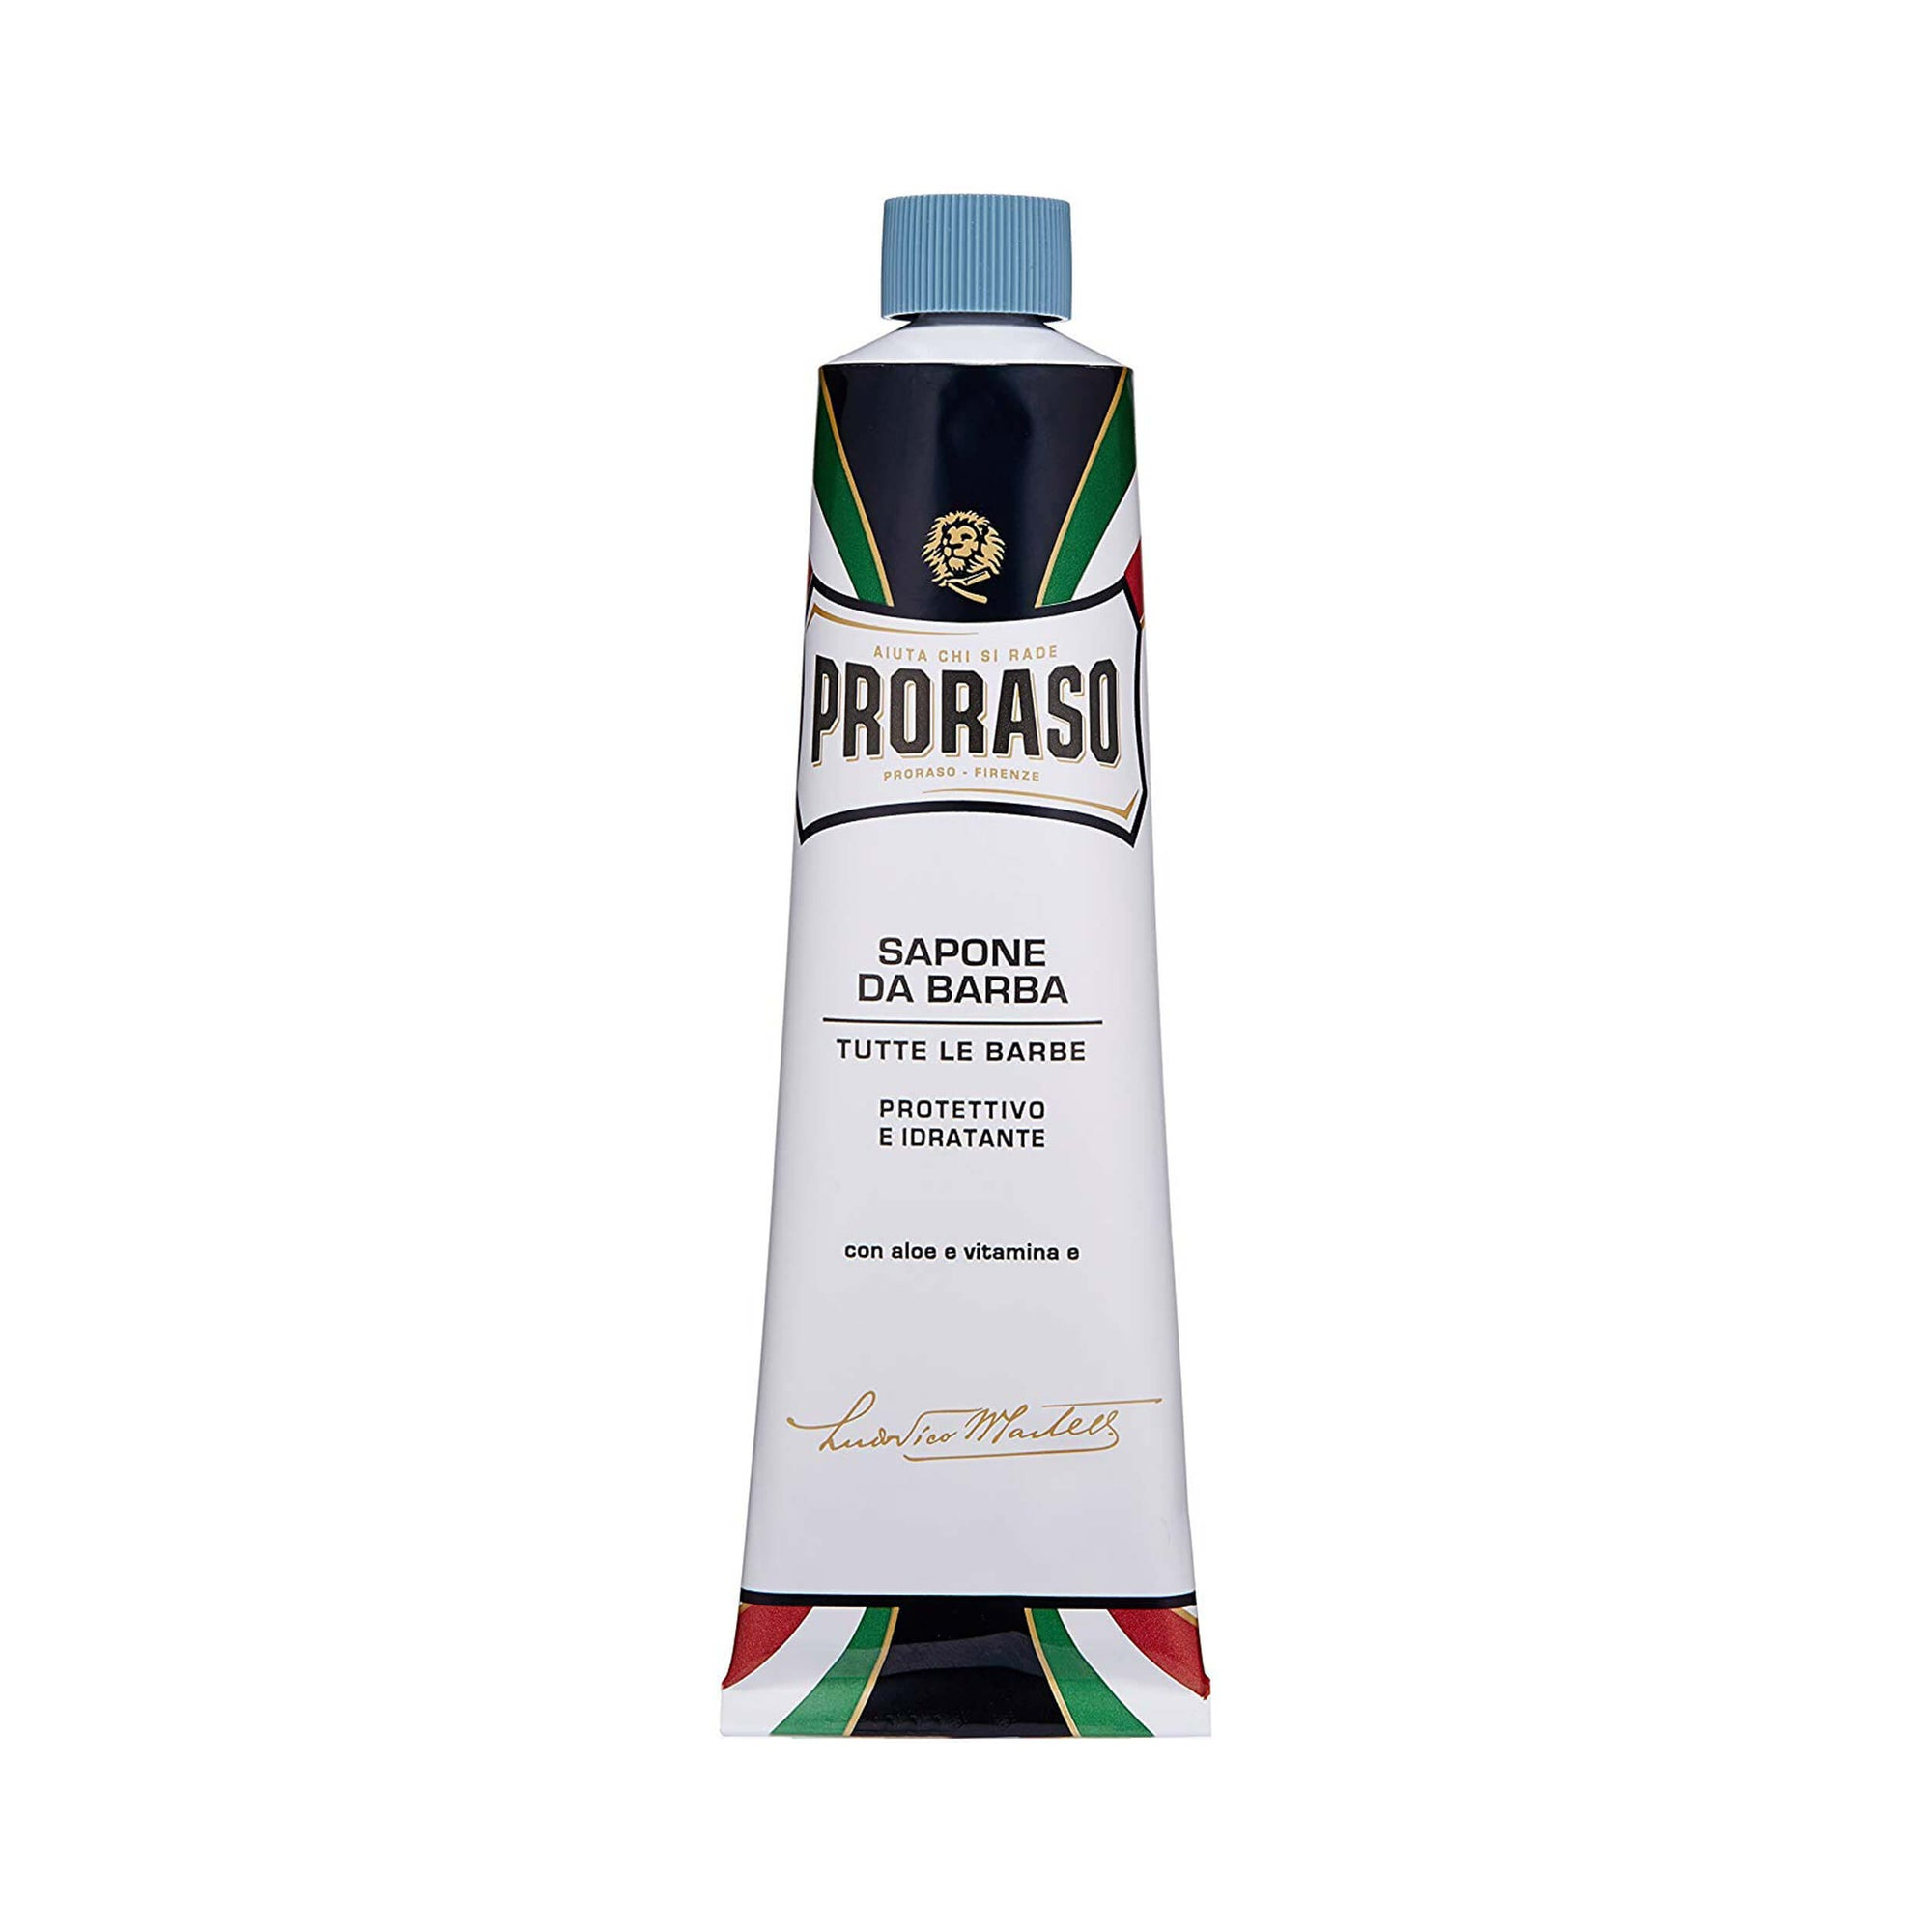 Proraso Shaving Cream Protective and Moisturizing 150 mL